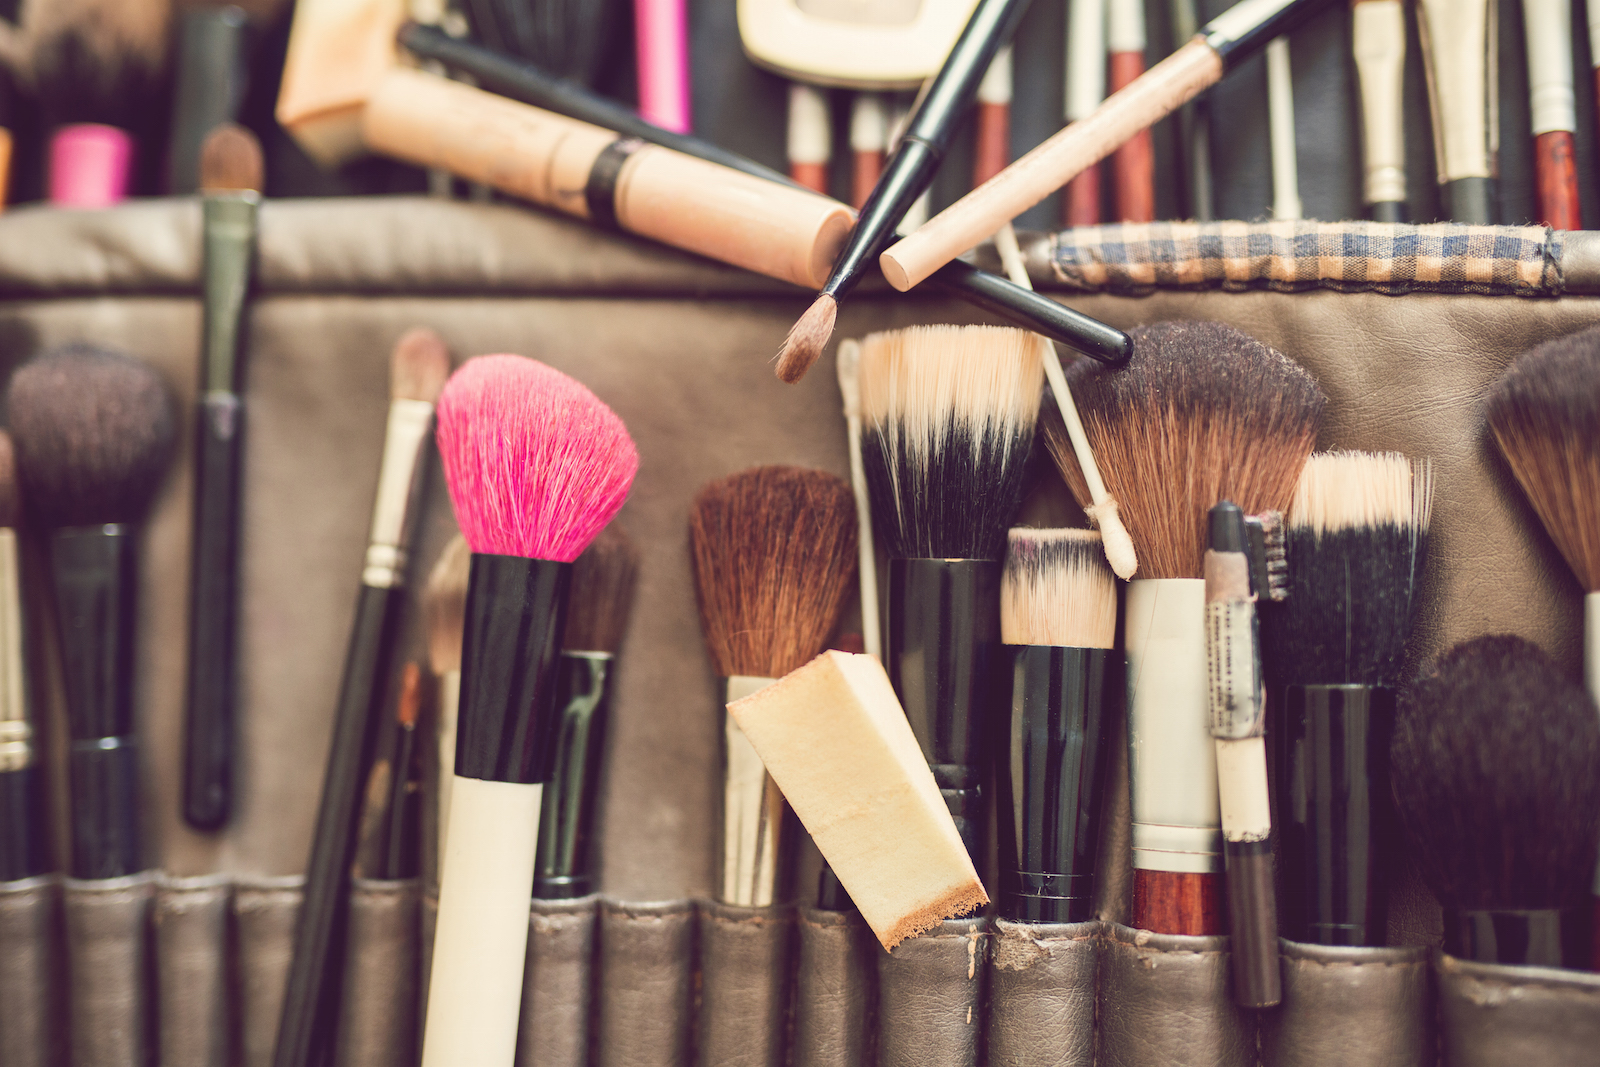 The Student's Guide to Cosmetology School